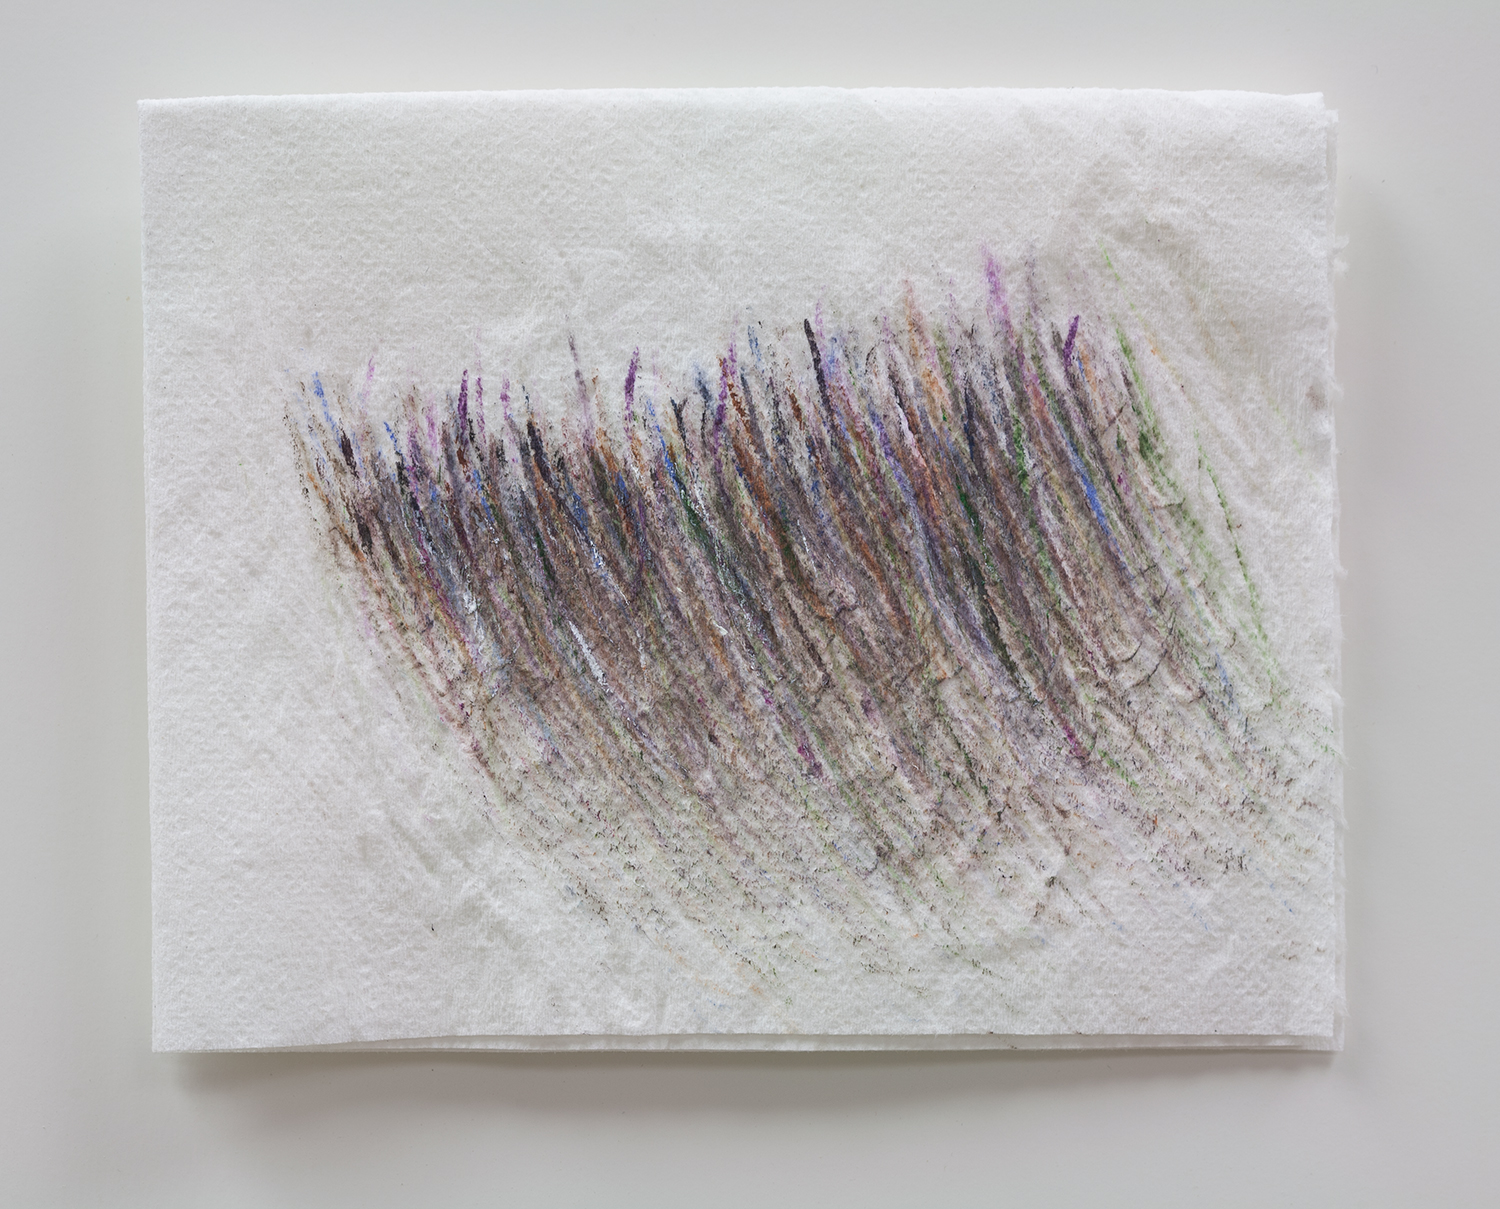 Cleaning Brushes Art 4